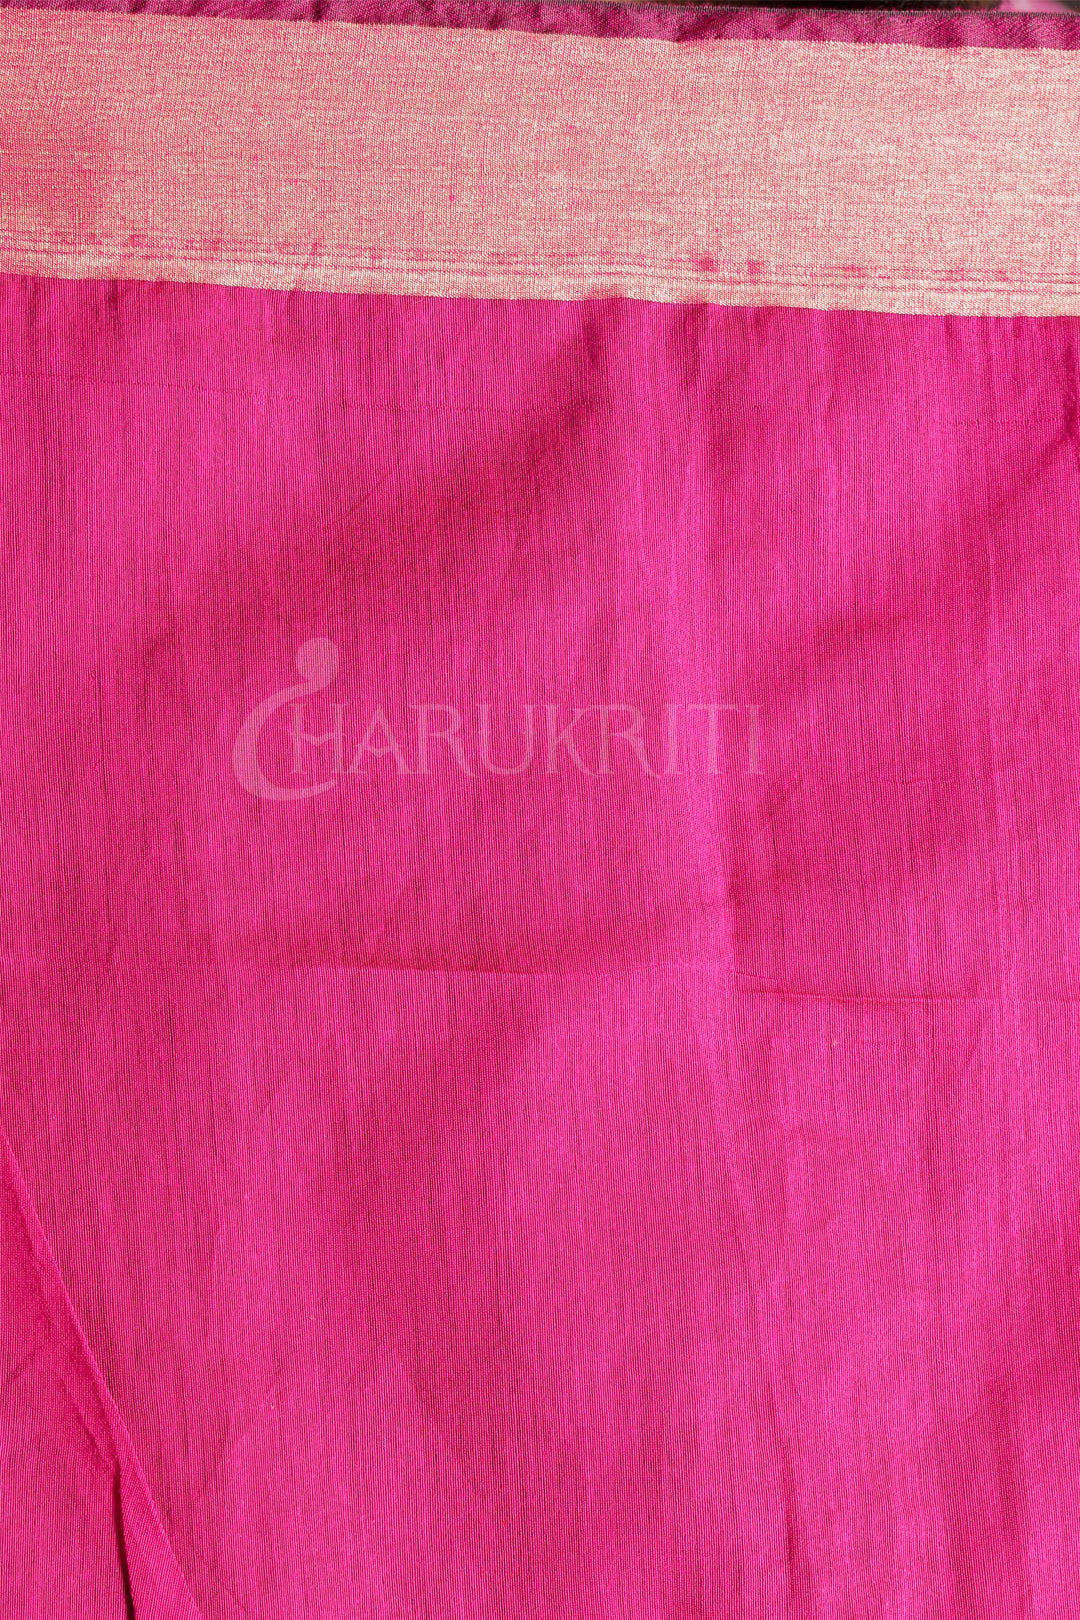 YELLOW BLENDED COTTON SAREE WITH MAGENTA MIRROR WORK - Charukriti